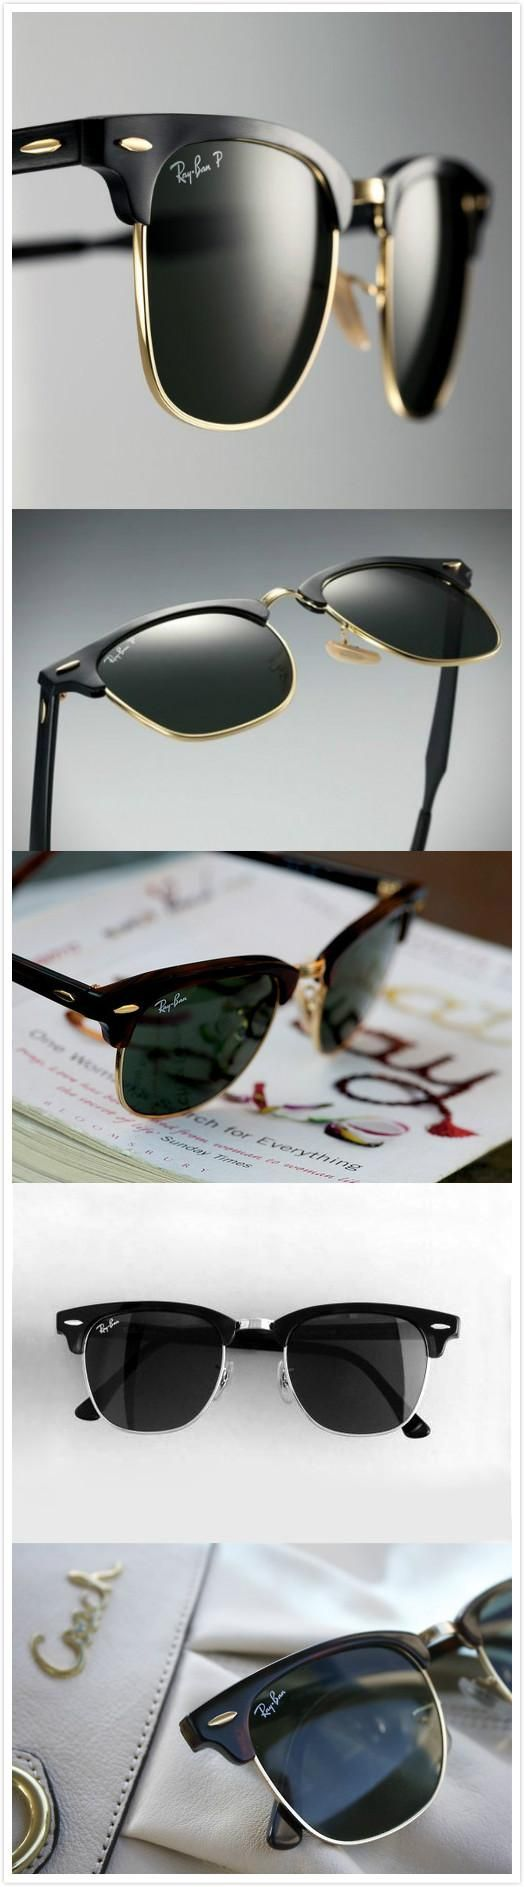 c37ade8b5 Ray Ban Sale 19.99 | United Nations System Chief Executives Board ...